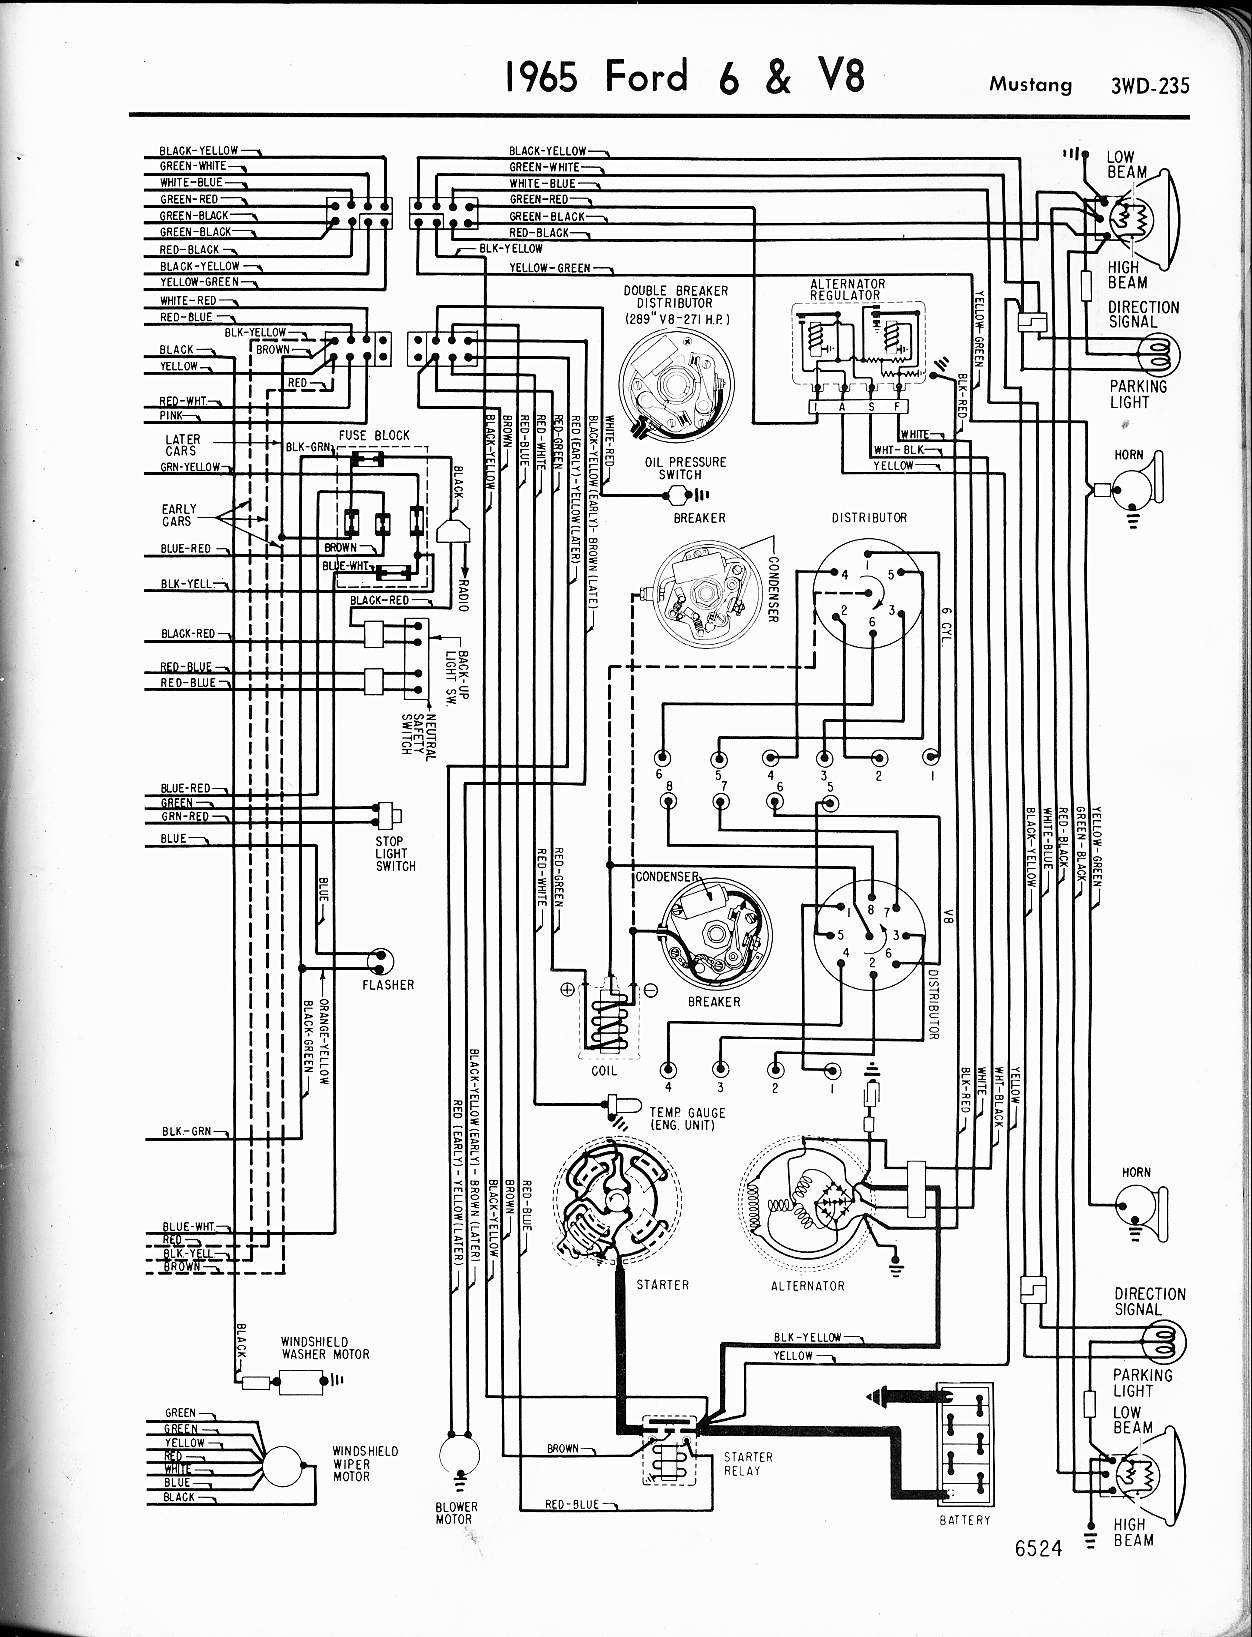 1965_mustang_wiring_2 ford diagrams old ford wiring harness at arjmand.co